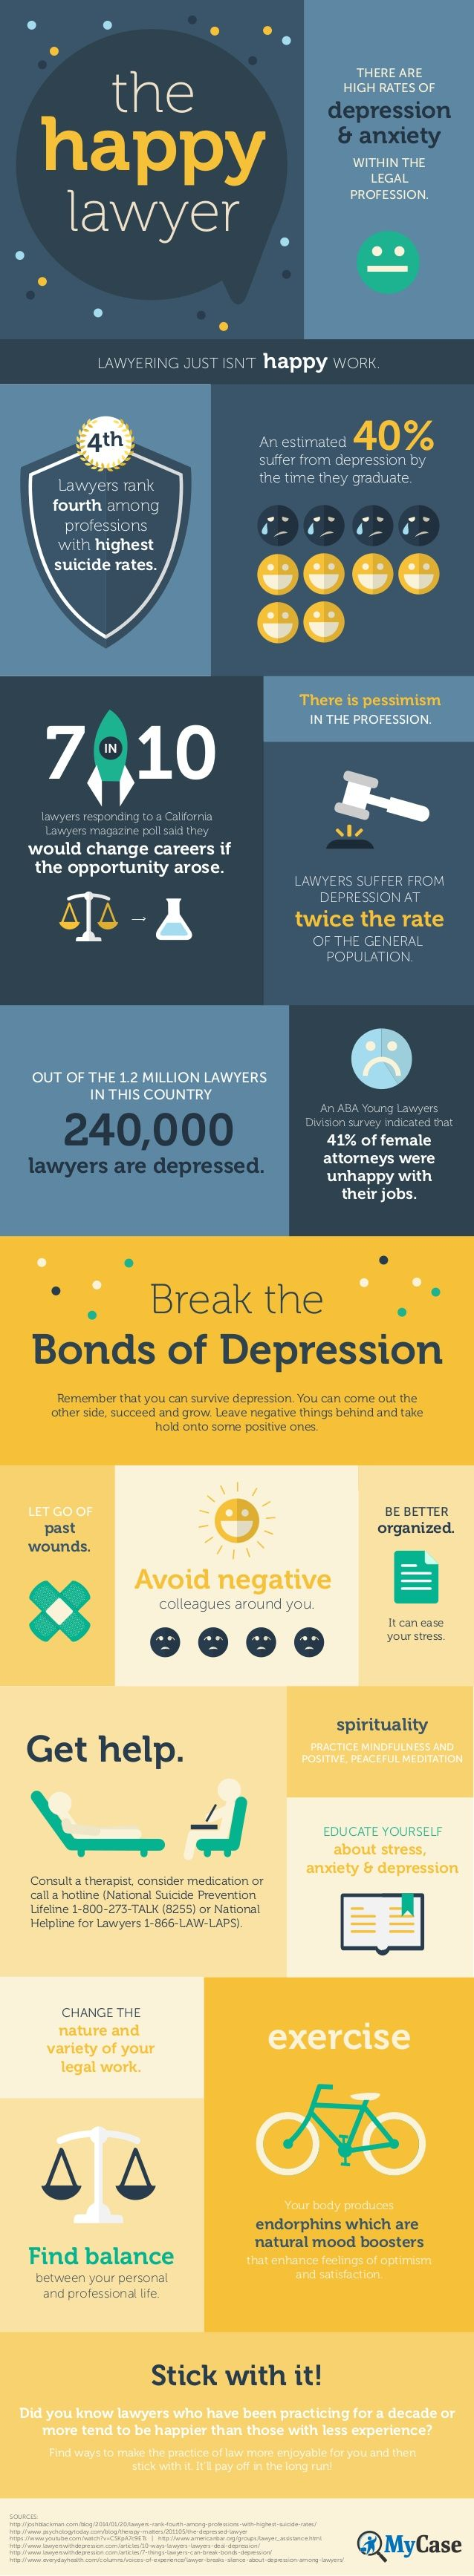 The Happy Lawyer Infographic 26 best Legal